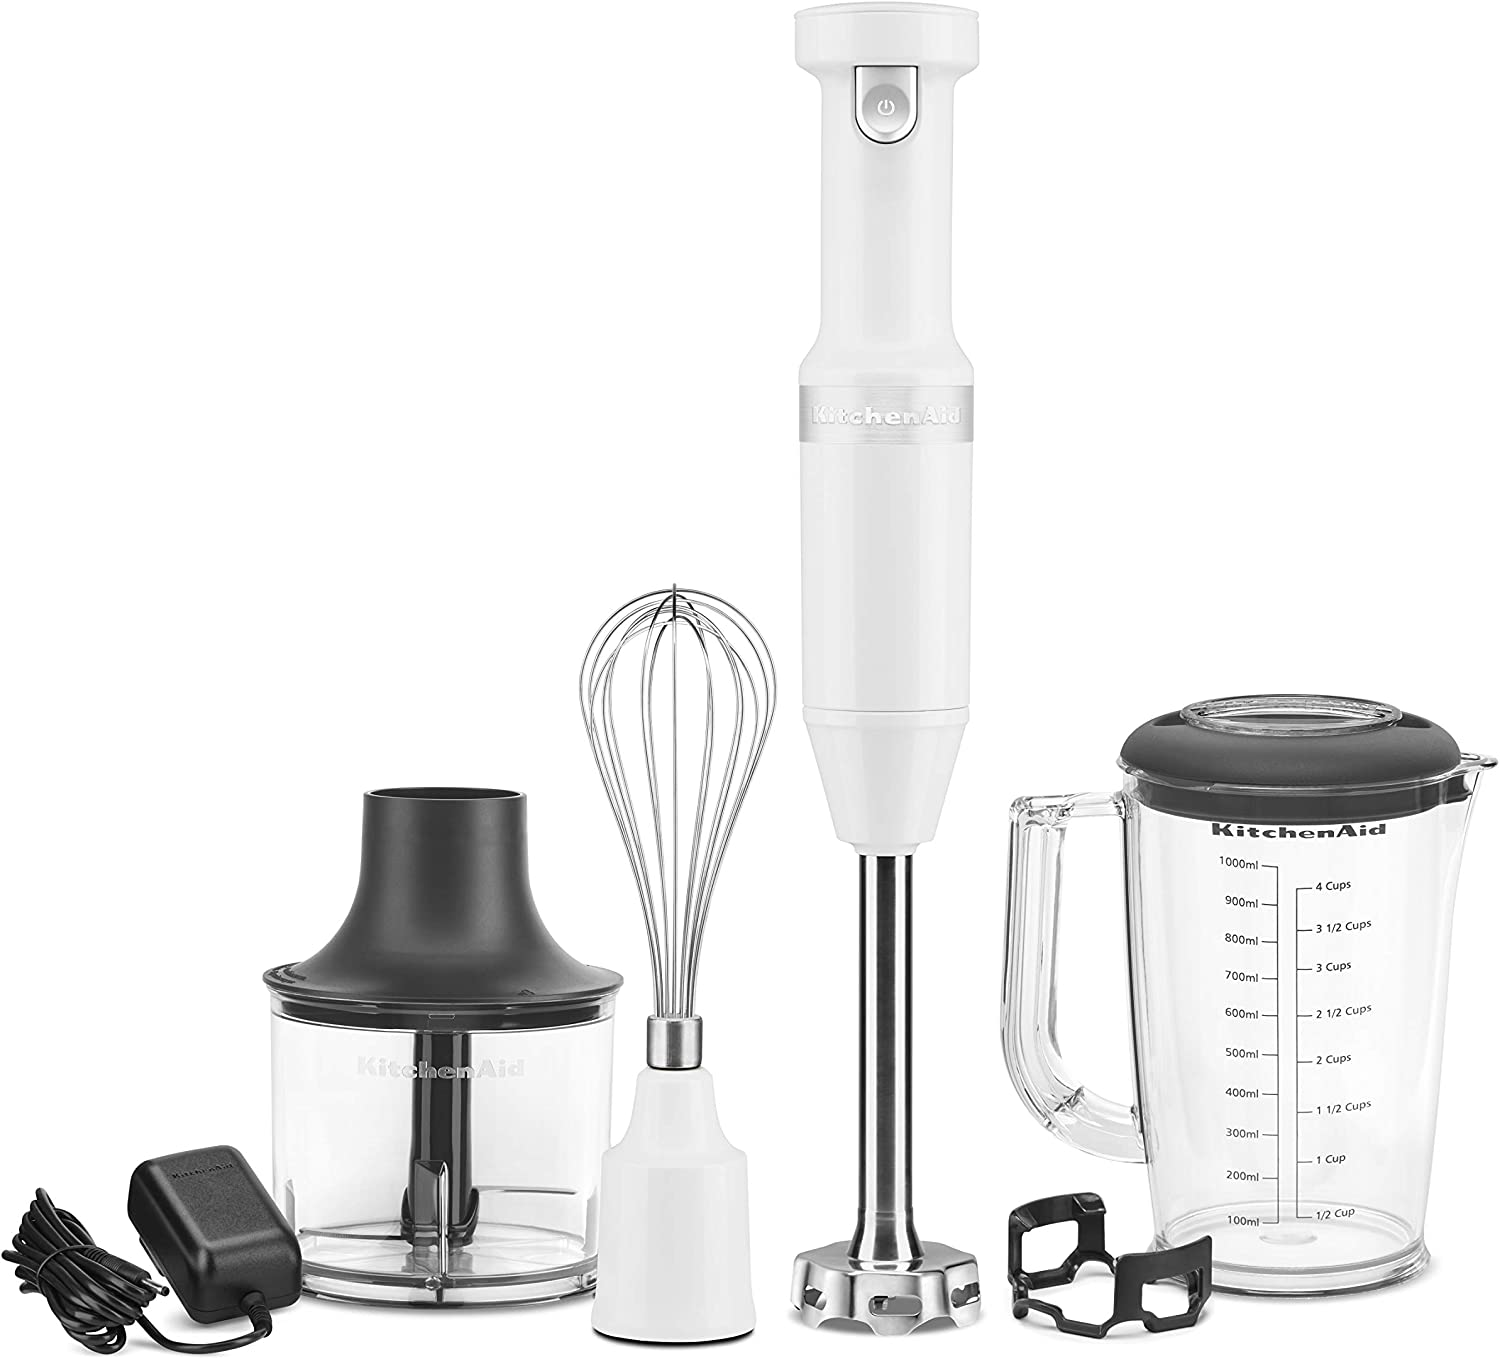 KitchenAid KHBBV83WH Cordless Variable Speed Hand Blender with Chopper and Whisk Attachment, White